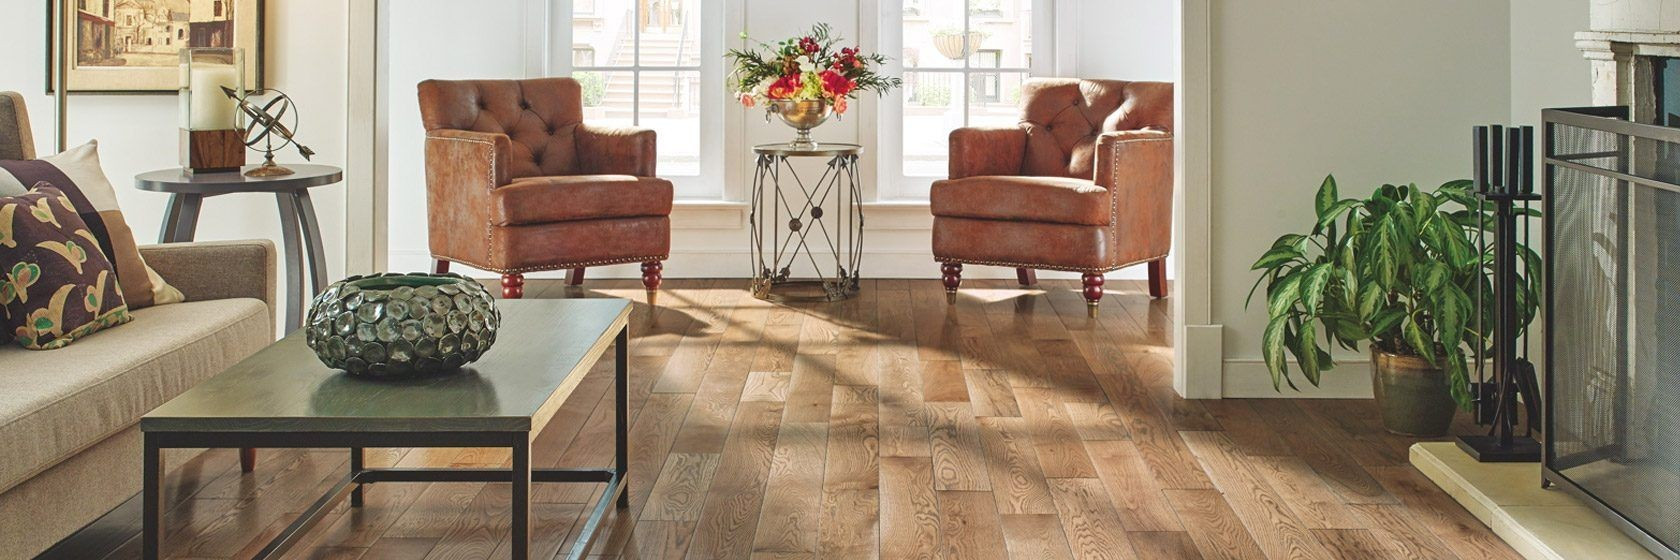 mirage engineered hardwood flooring prices of 19 best of hardwood floor tile stock dizpos com pertaining to hardwood floor tile best of oak solid hardwood hay ground saktb39l4hgw is part of the pics